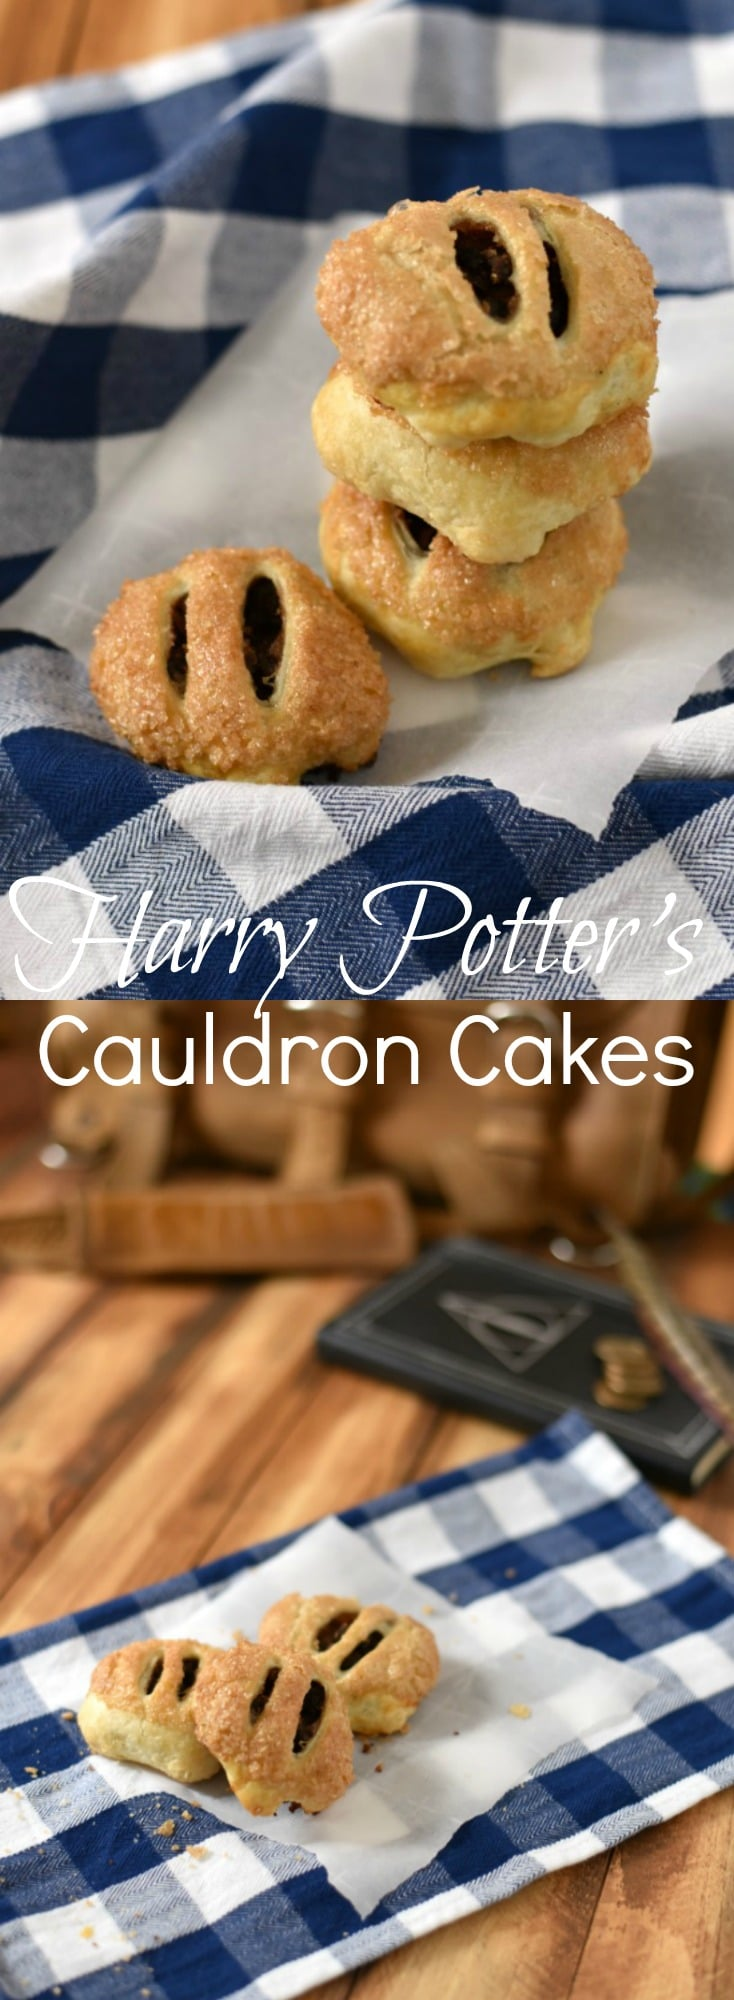 Cauldron Cakes are tender little treats (also known as Eccles Cakes) stuffed with spiced dried figs & wrapped in puff pastry. Harry Potter Inspired Recipe.